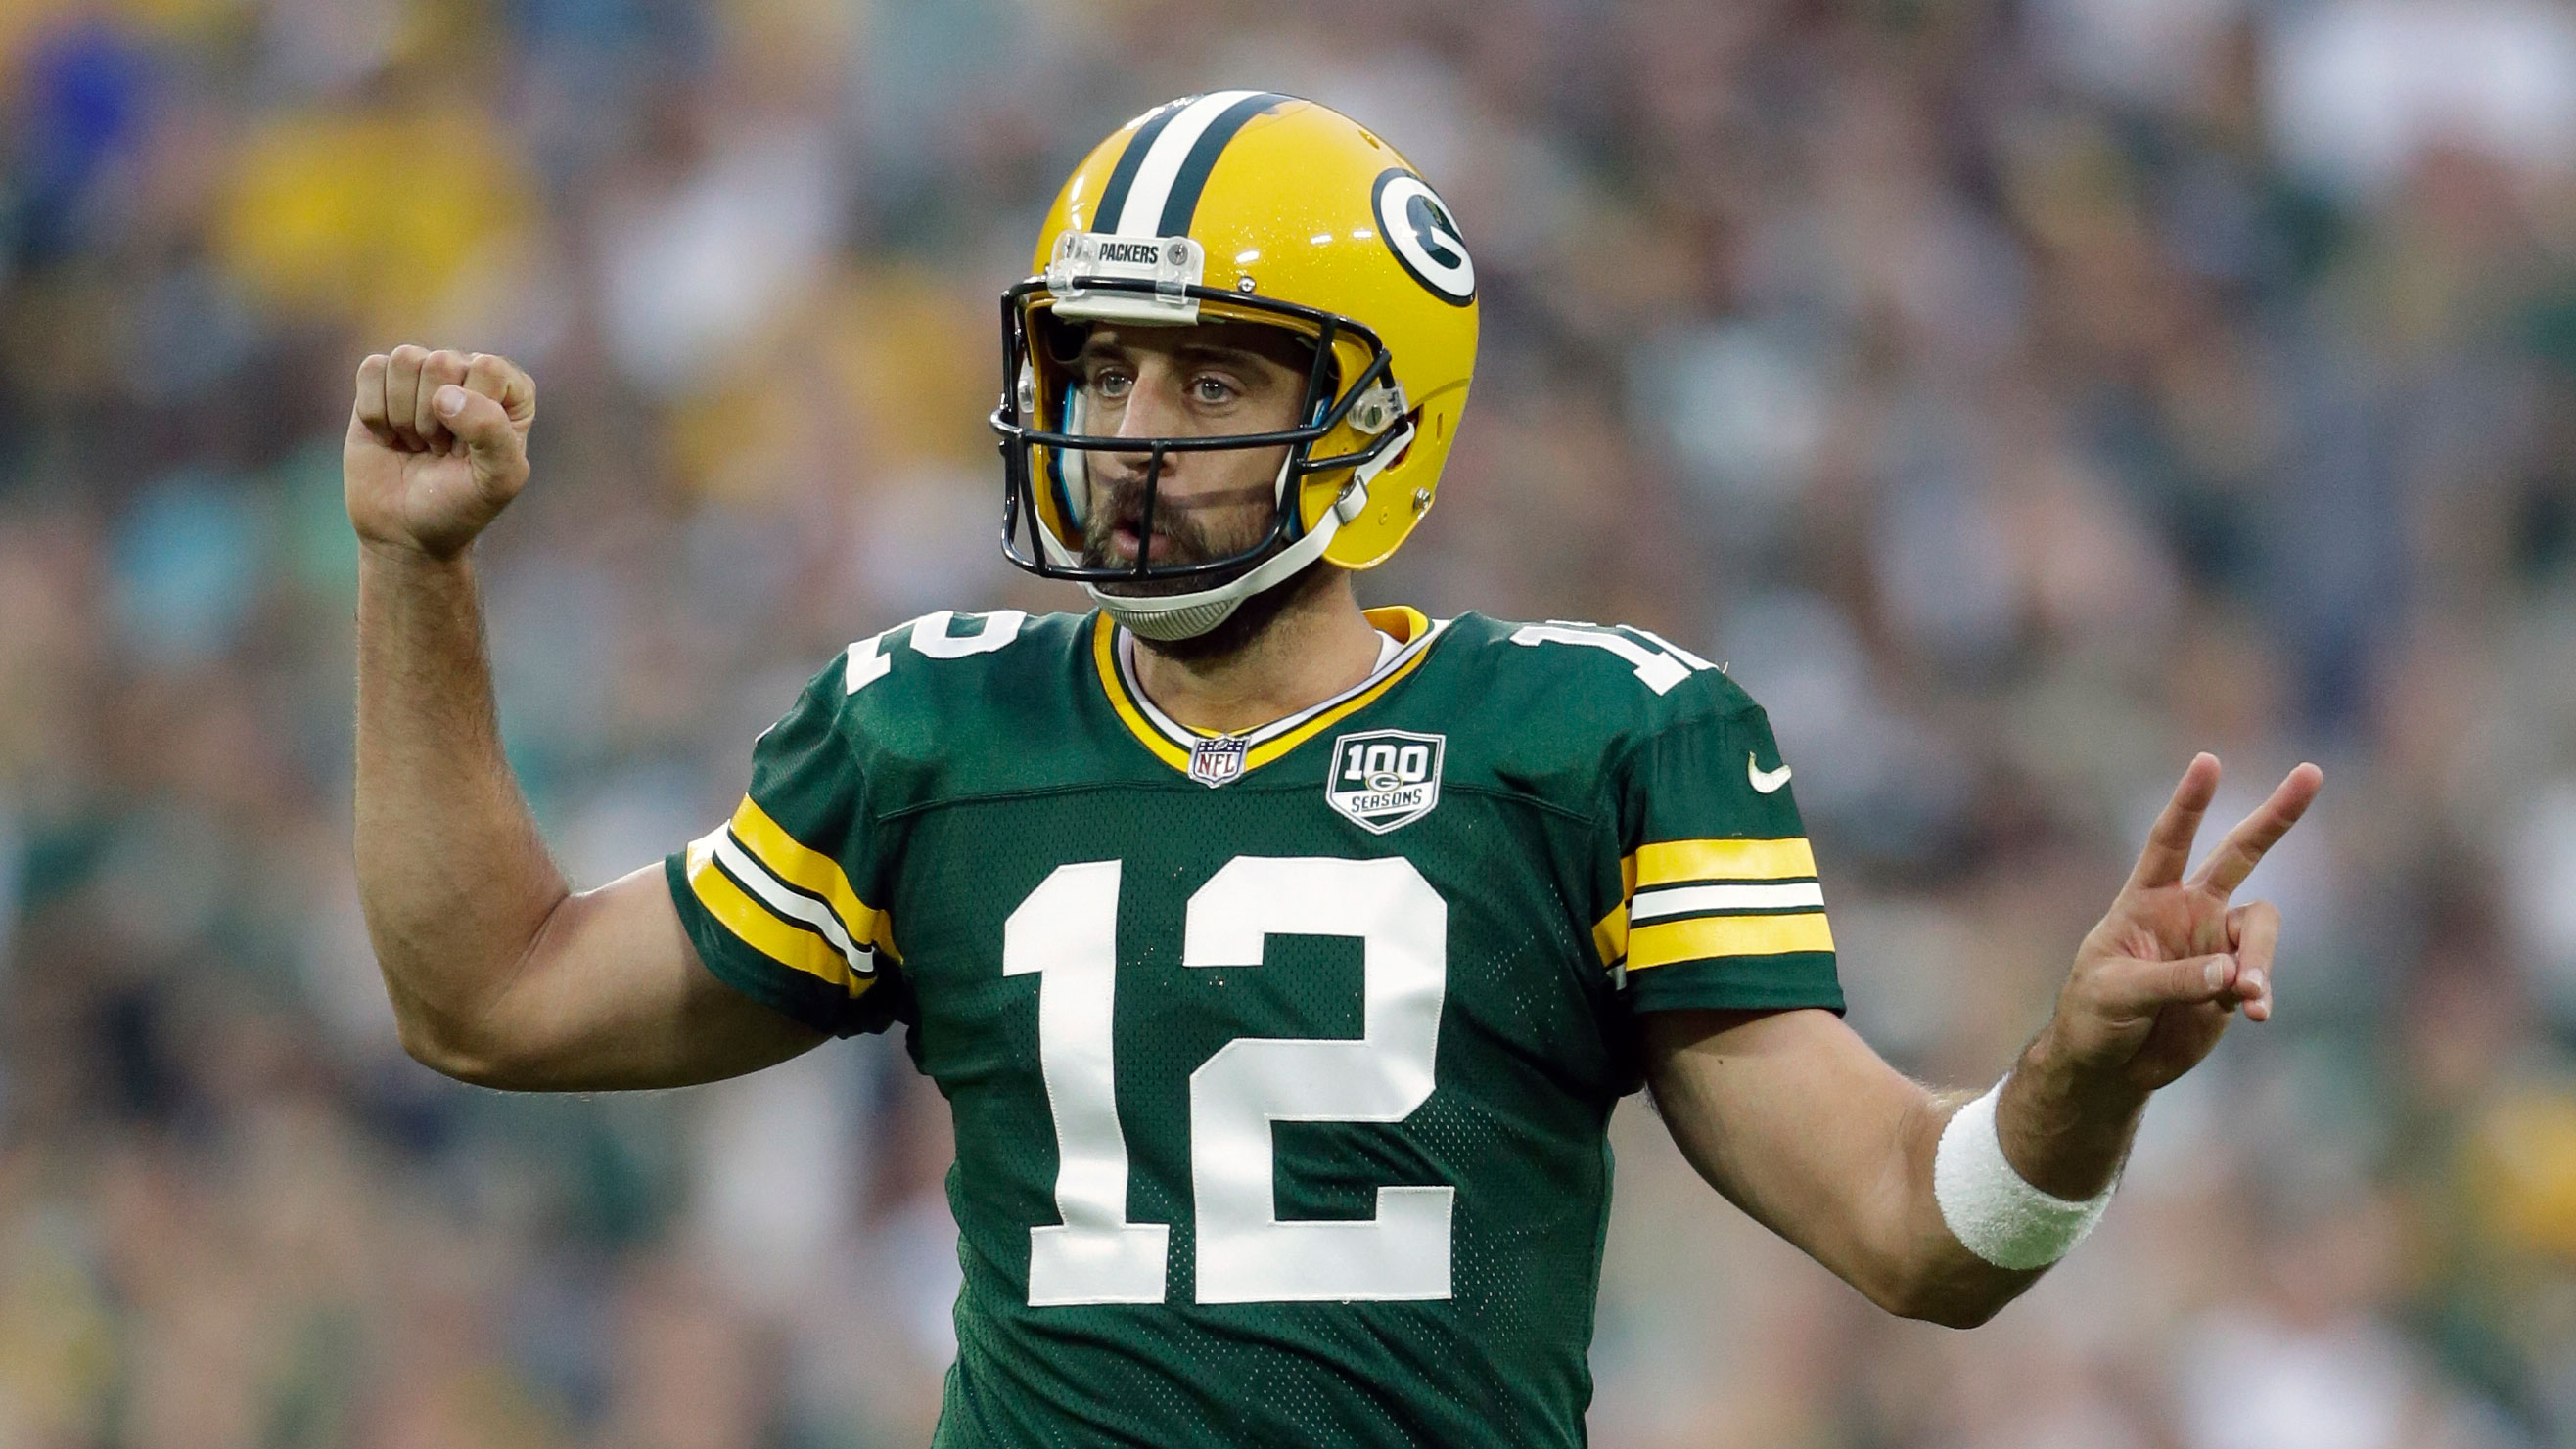 d4577b9d4a7 Packers legend Bart Starr shares note he wrote to Aaron Rodgers ...